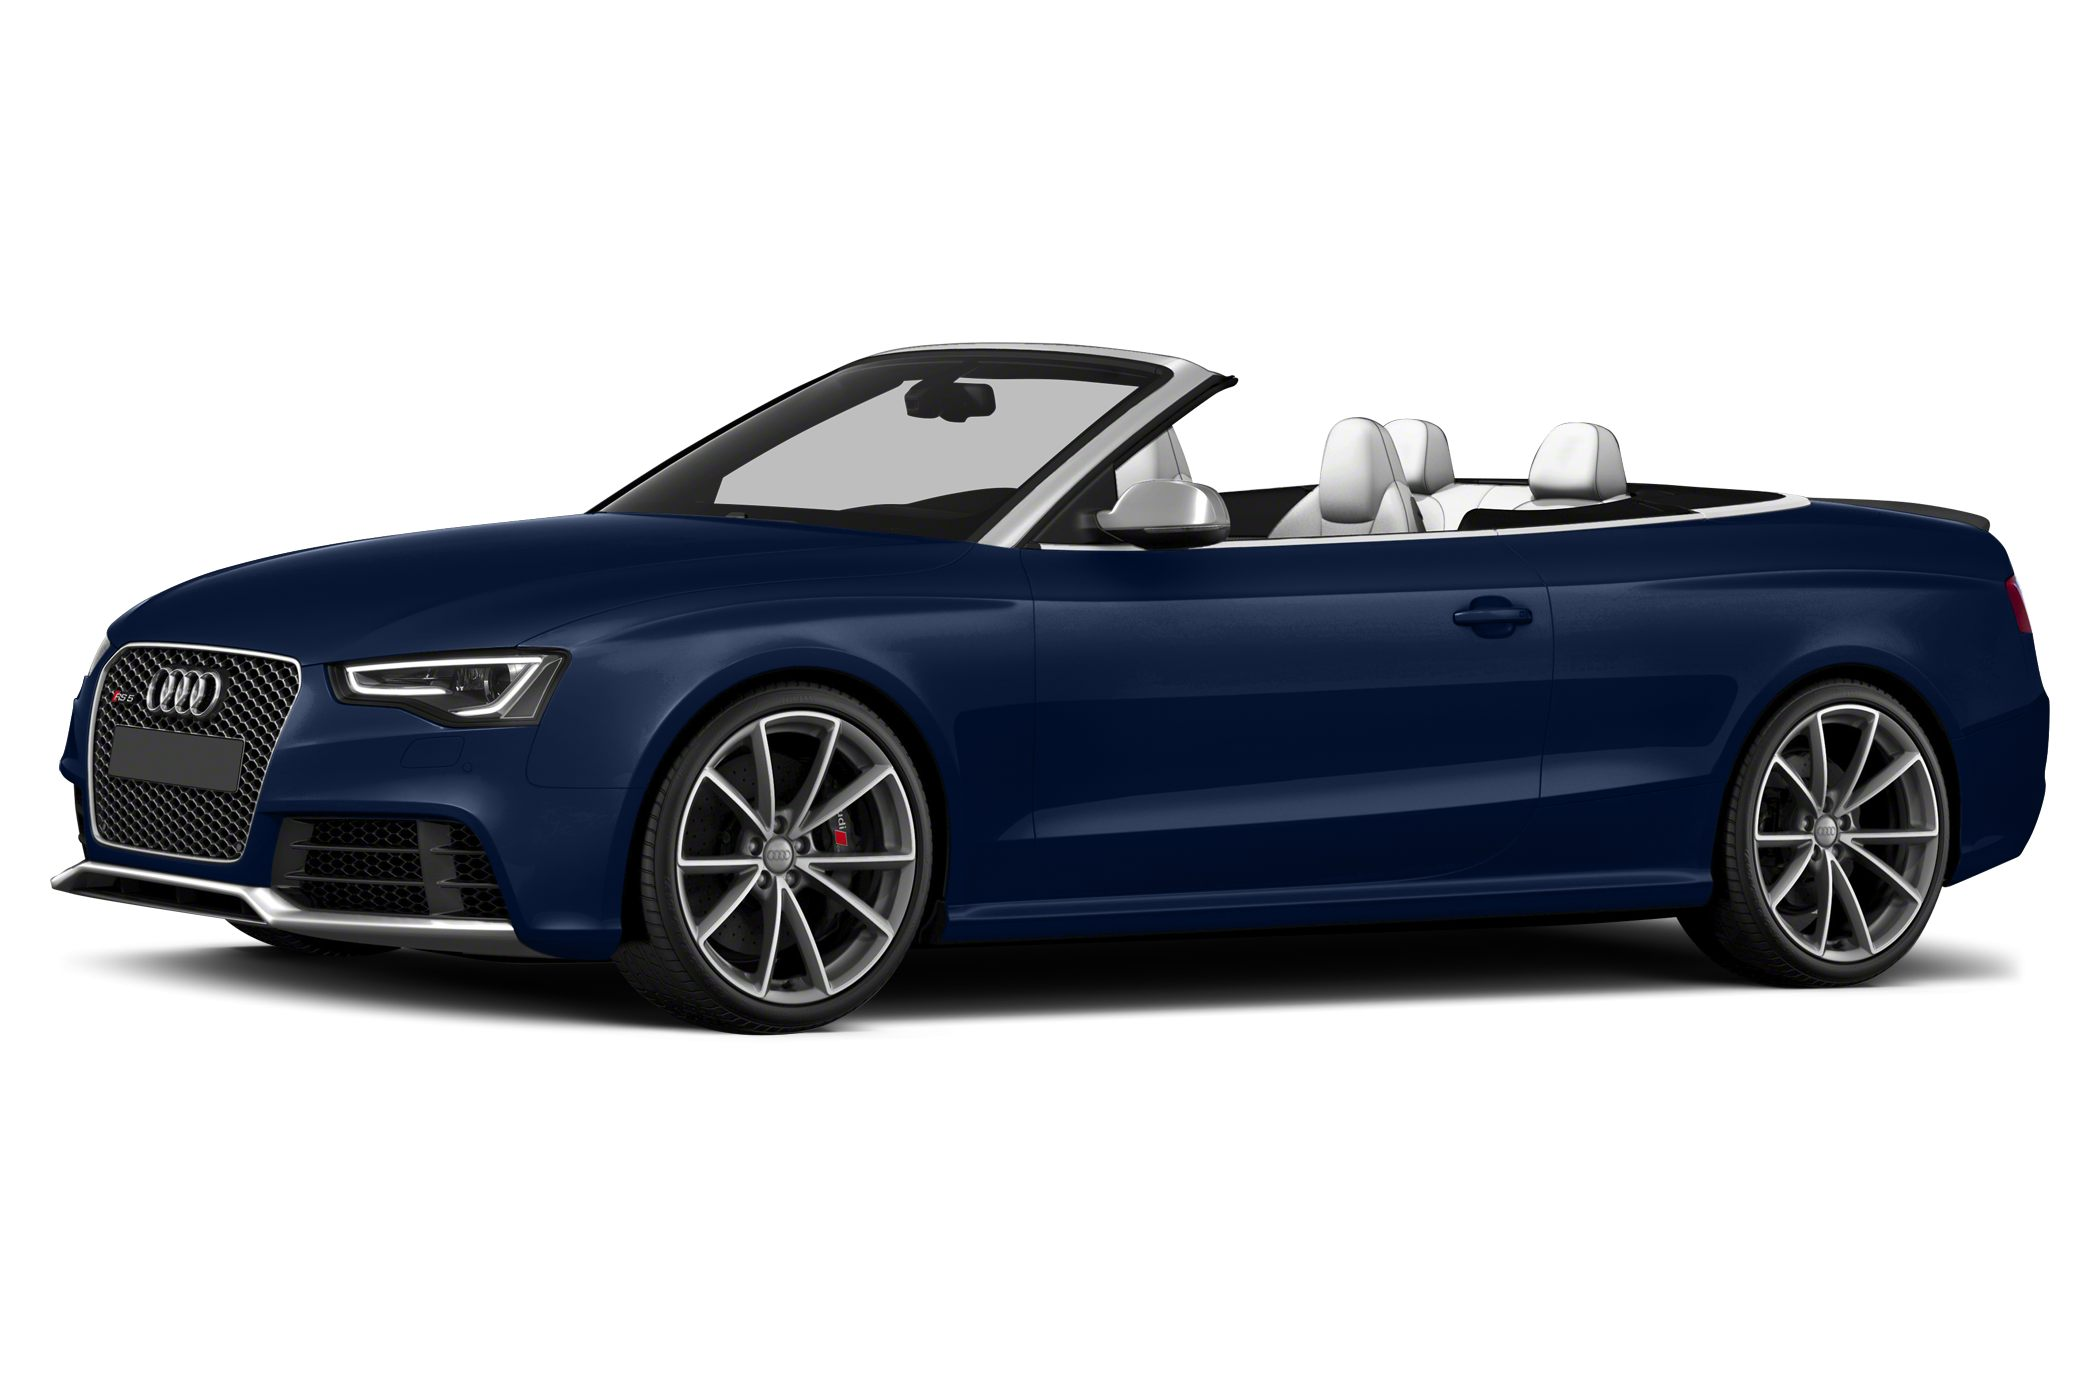 2019 Audi RS5 Cabriolet photo - 6